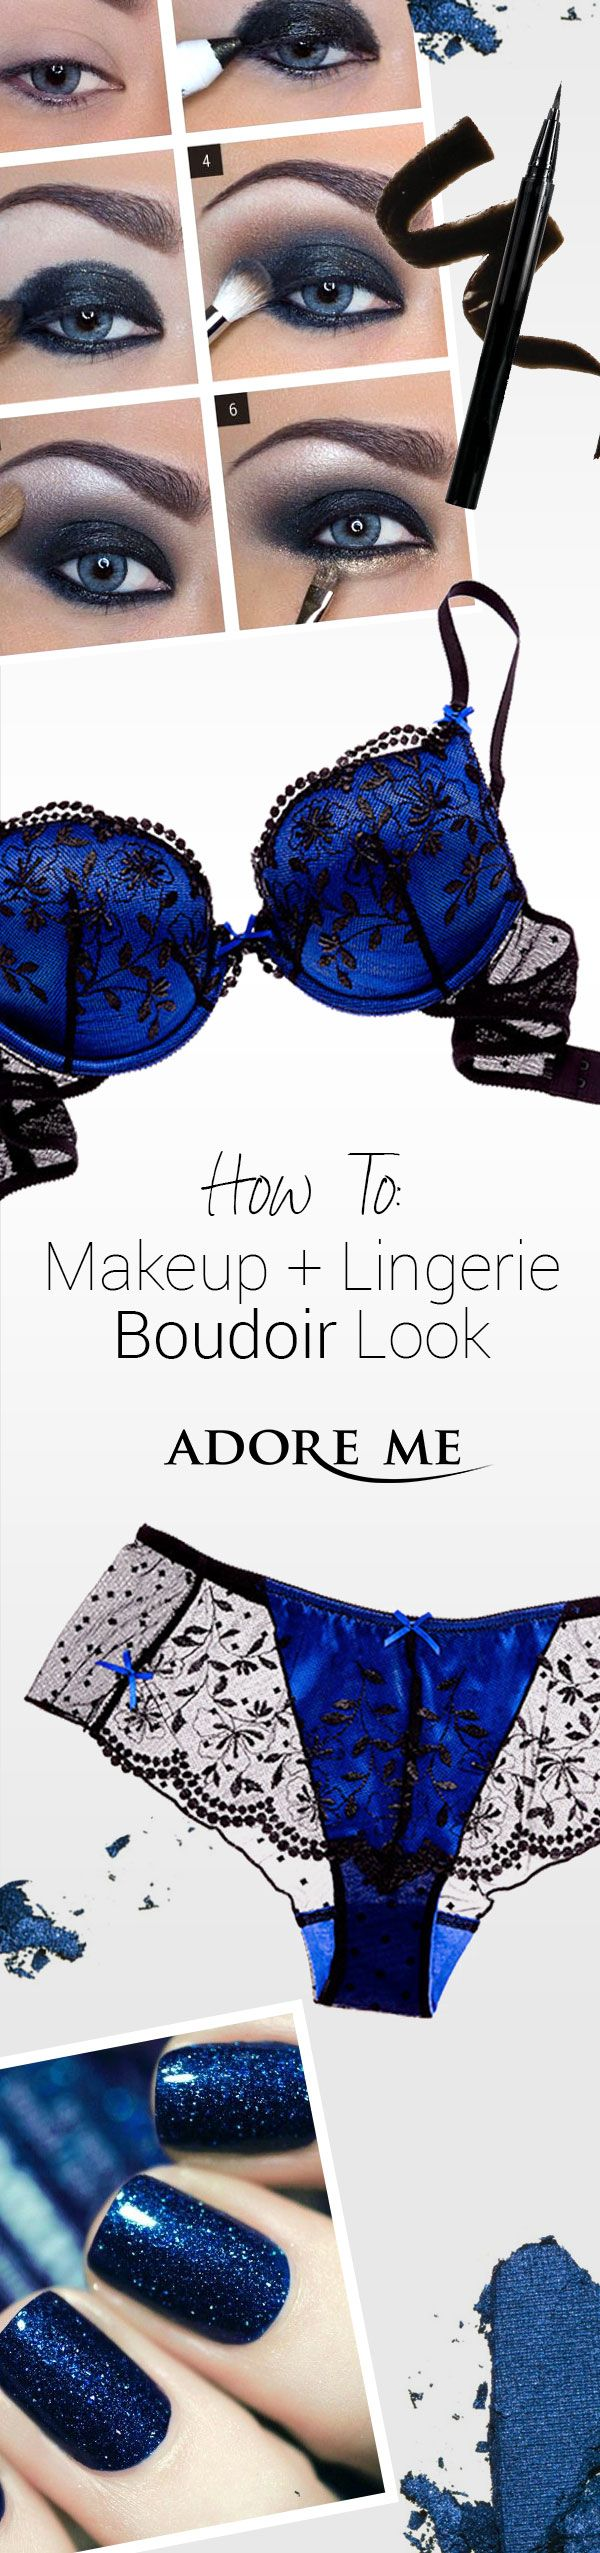 Want an easy boudoir-approved look? Match the tones of your lingerie to your eye makeup, nail polish, even your hair! Get inspired with lingerie from Adore Me <3